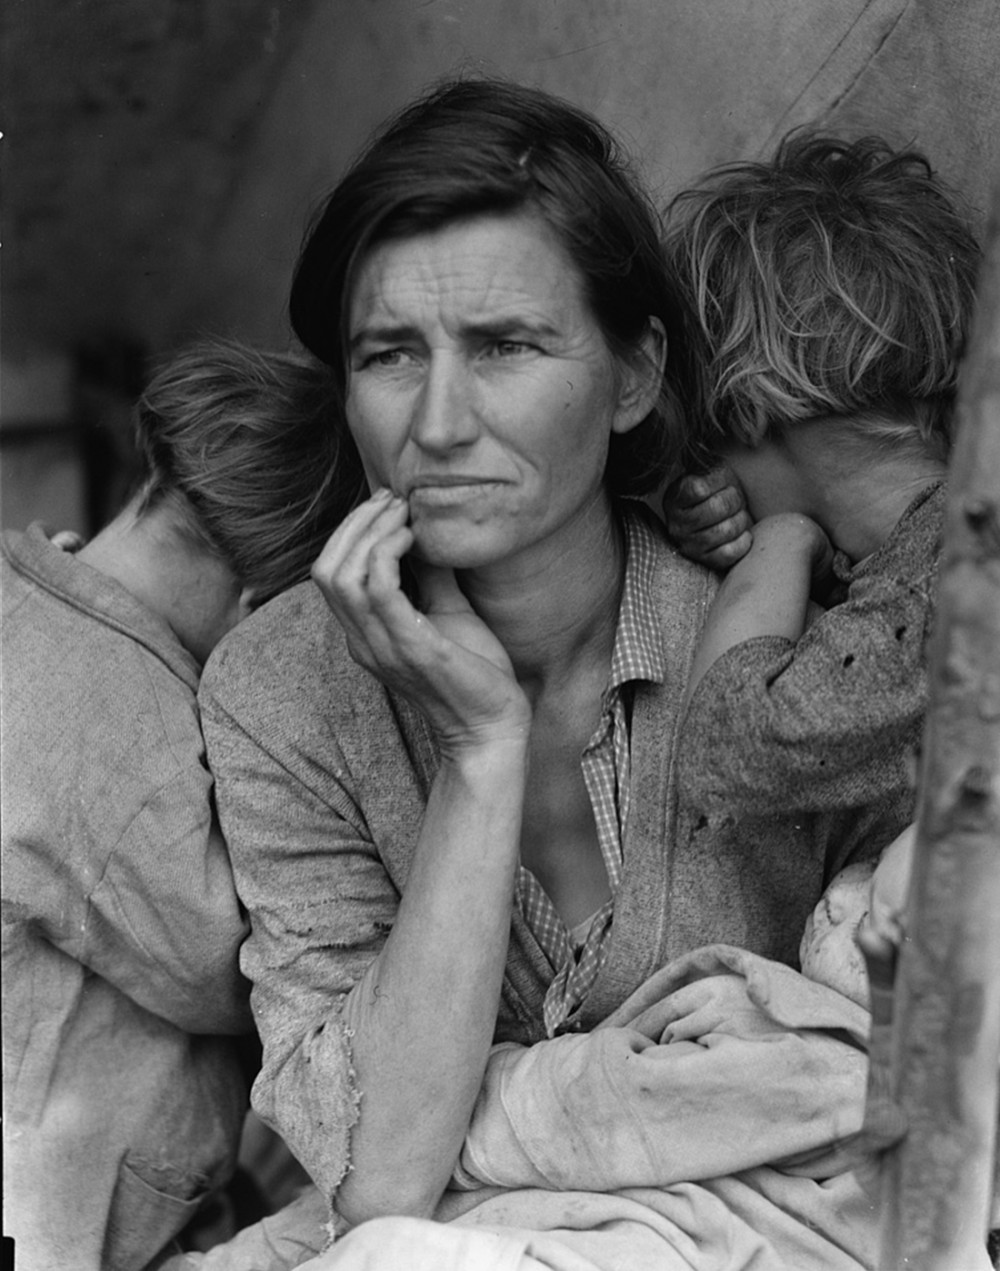 A woman looks off into the distance. Two children are burying their faces in her shoulders.